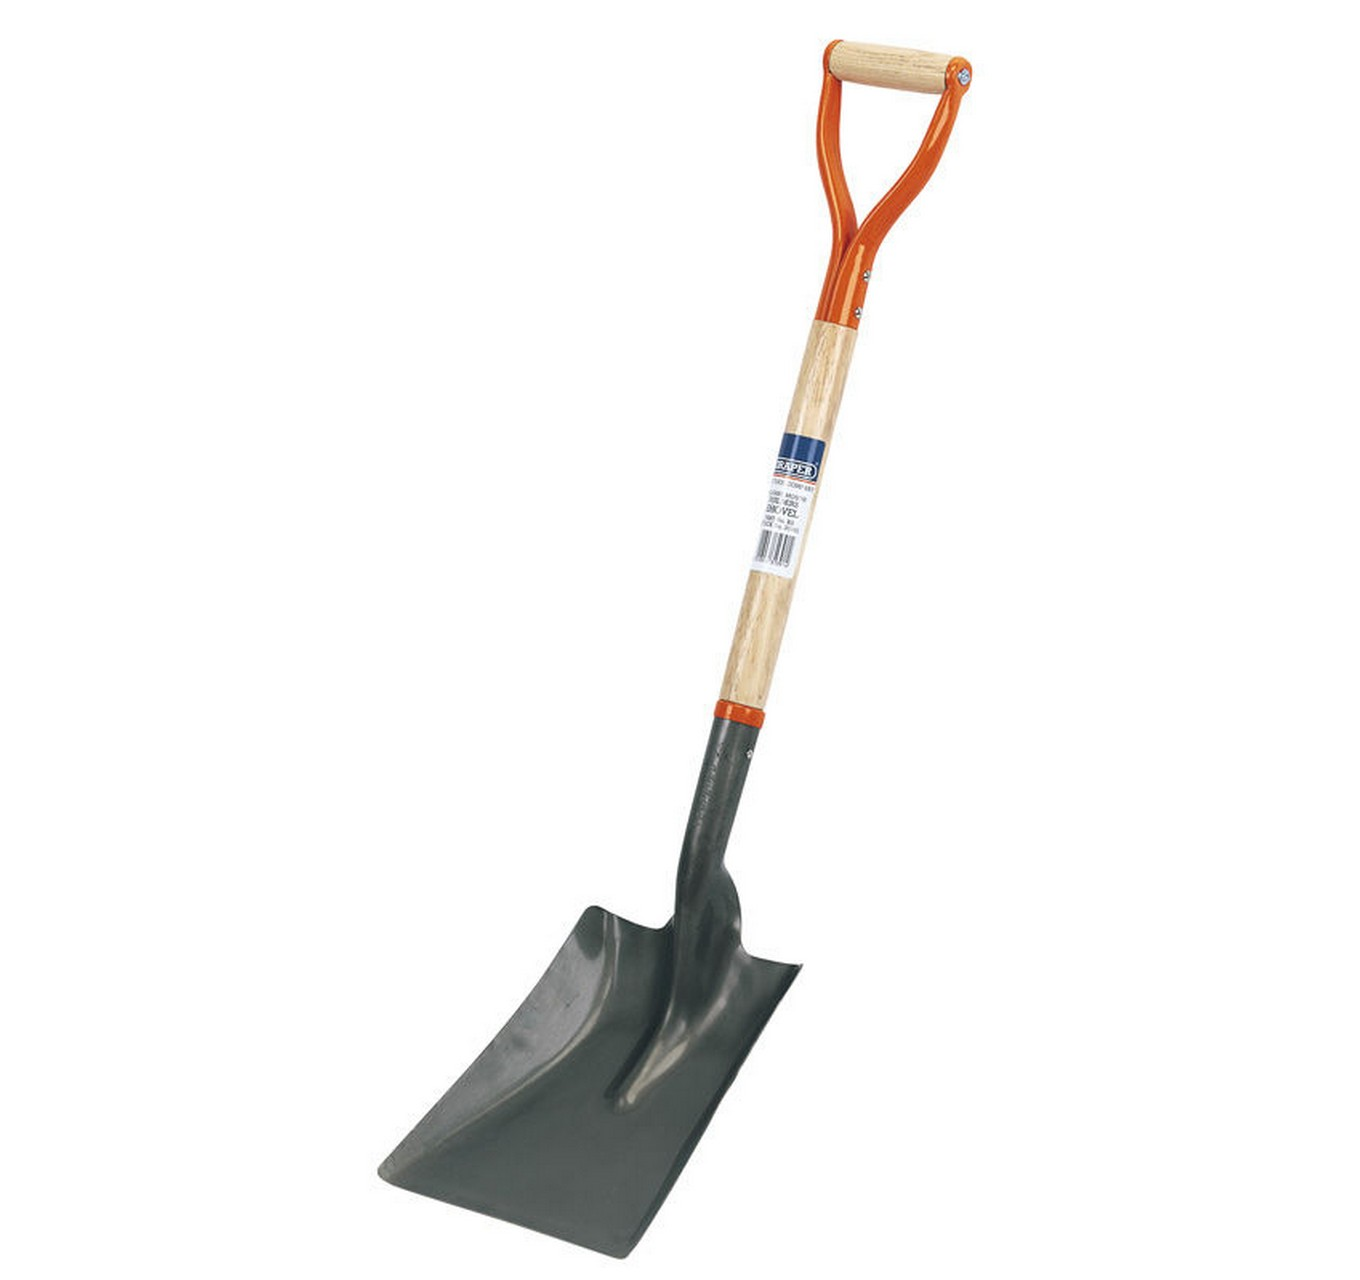 Square Mouth Builders Shovel